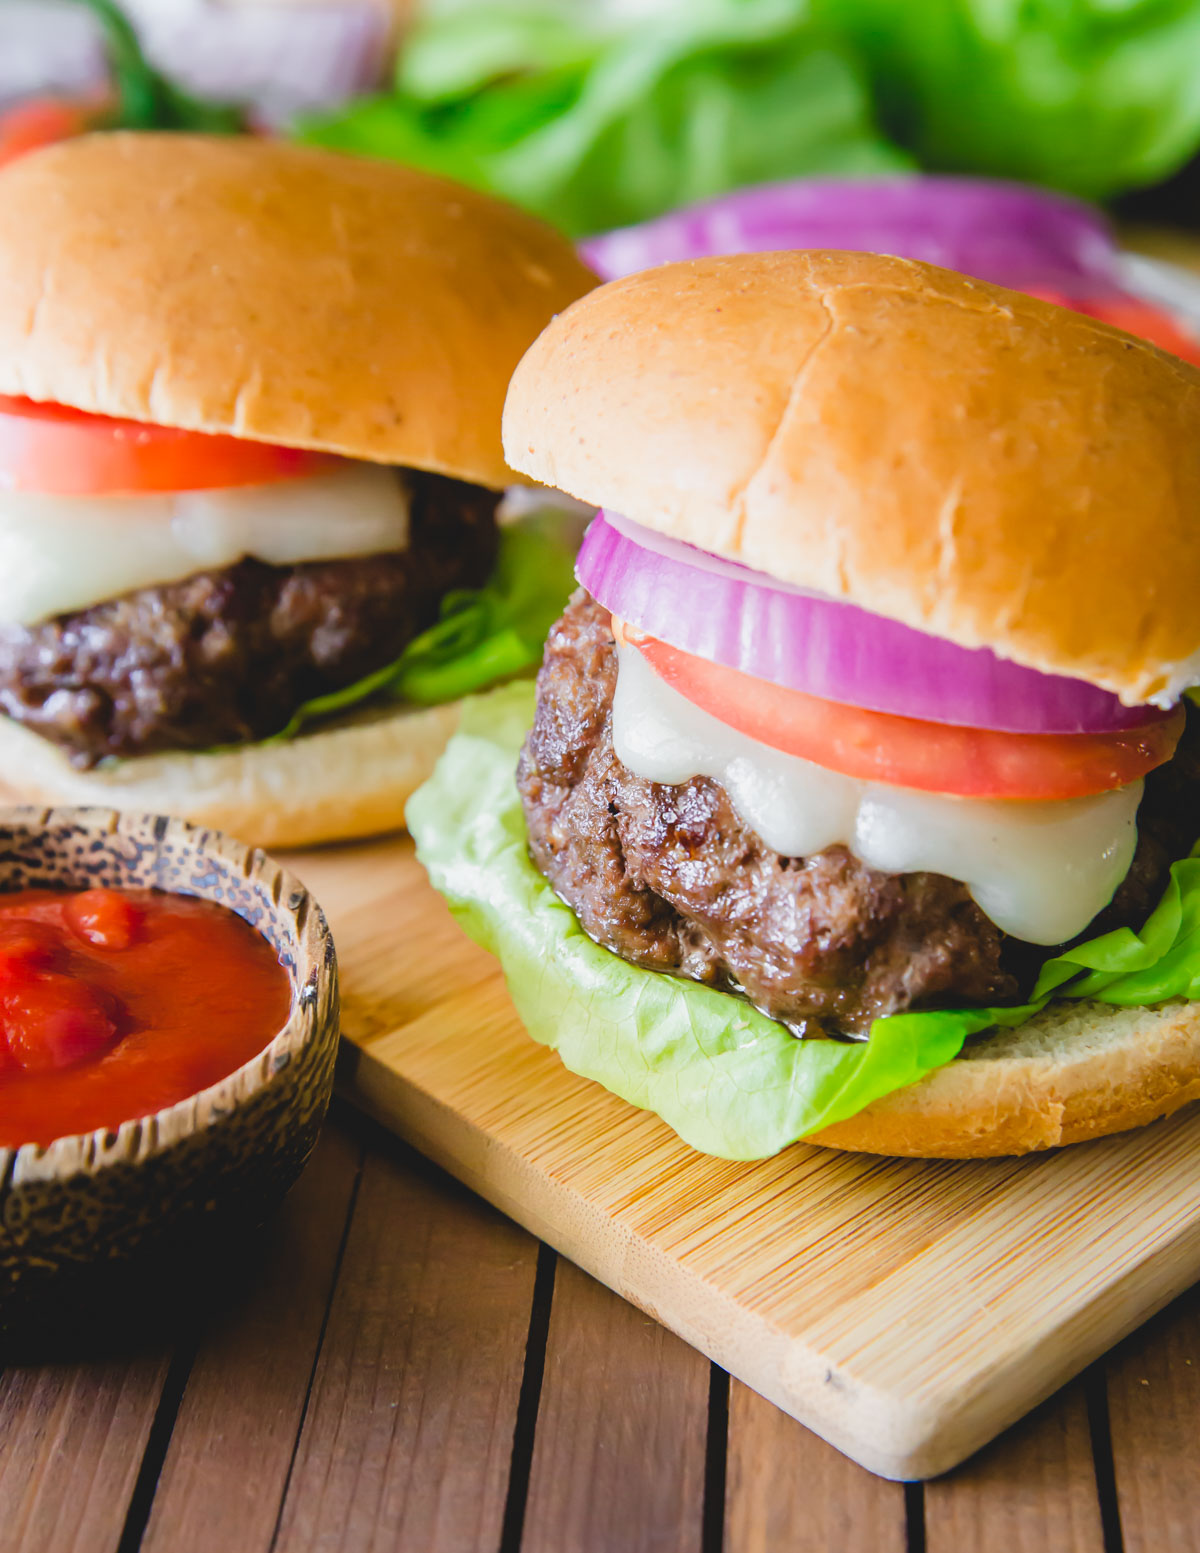 Elk burger made with ground elk meat, ghee and spices on a bun with melted cheese, lettuce, tomato and onion.